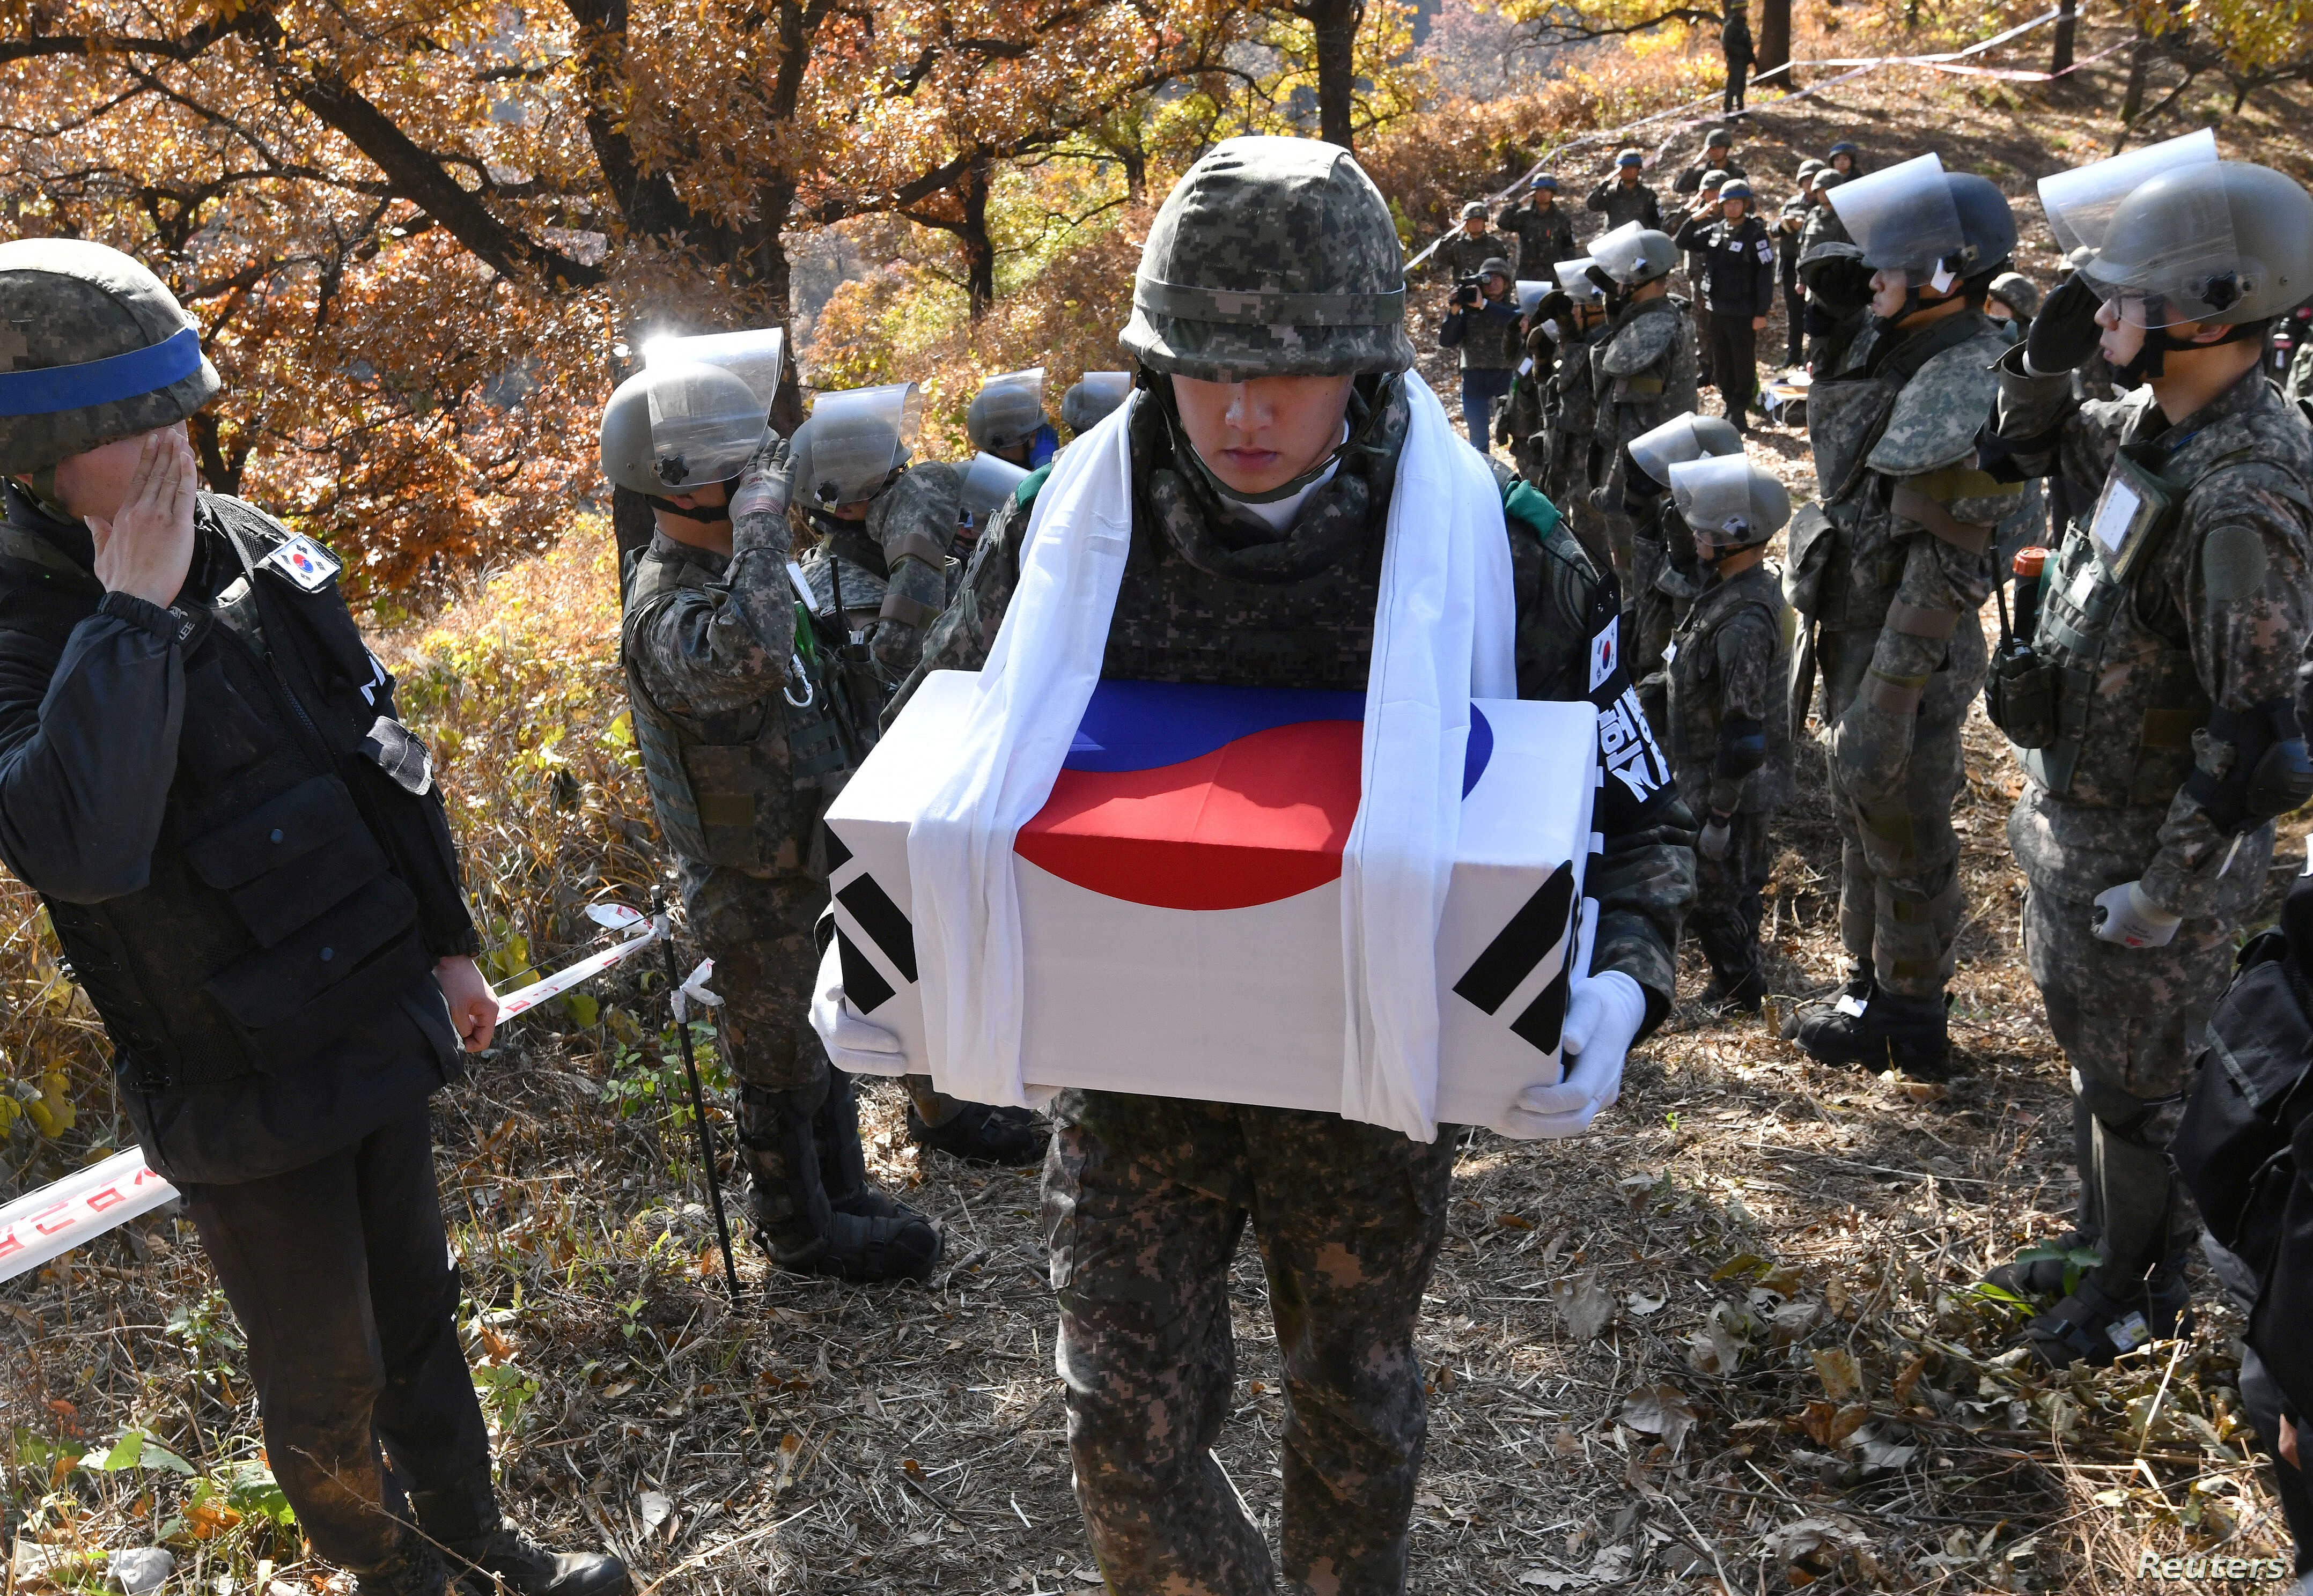 A South Korean soldier carries a casket containing a piece of bone believed to be the remains of an unidentified South Korean soldier killed in the Korean War in the Demilitarized Zone (DMZ) dividing the two Koreas in Cheorwon, South Korea October 25...